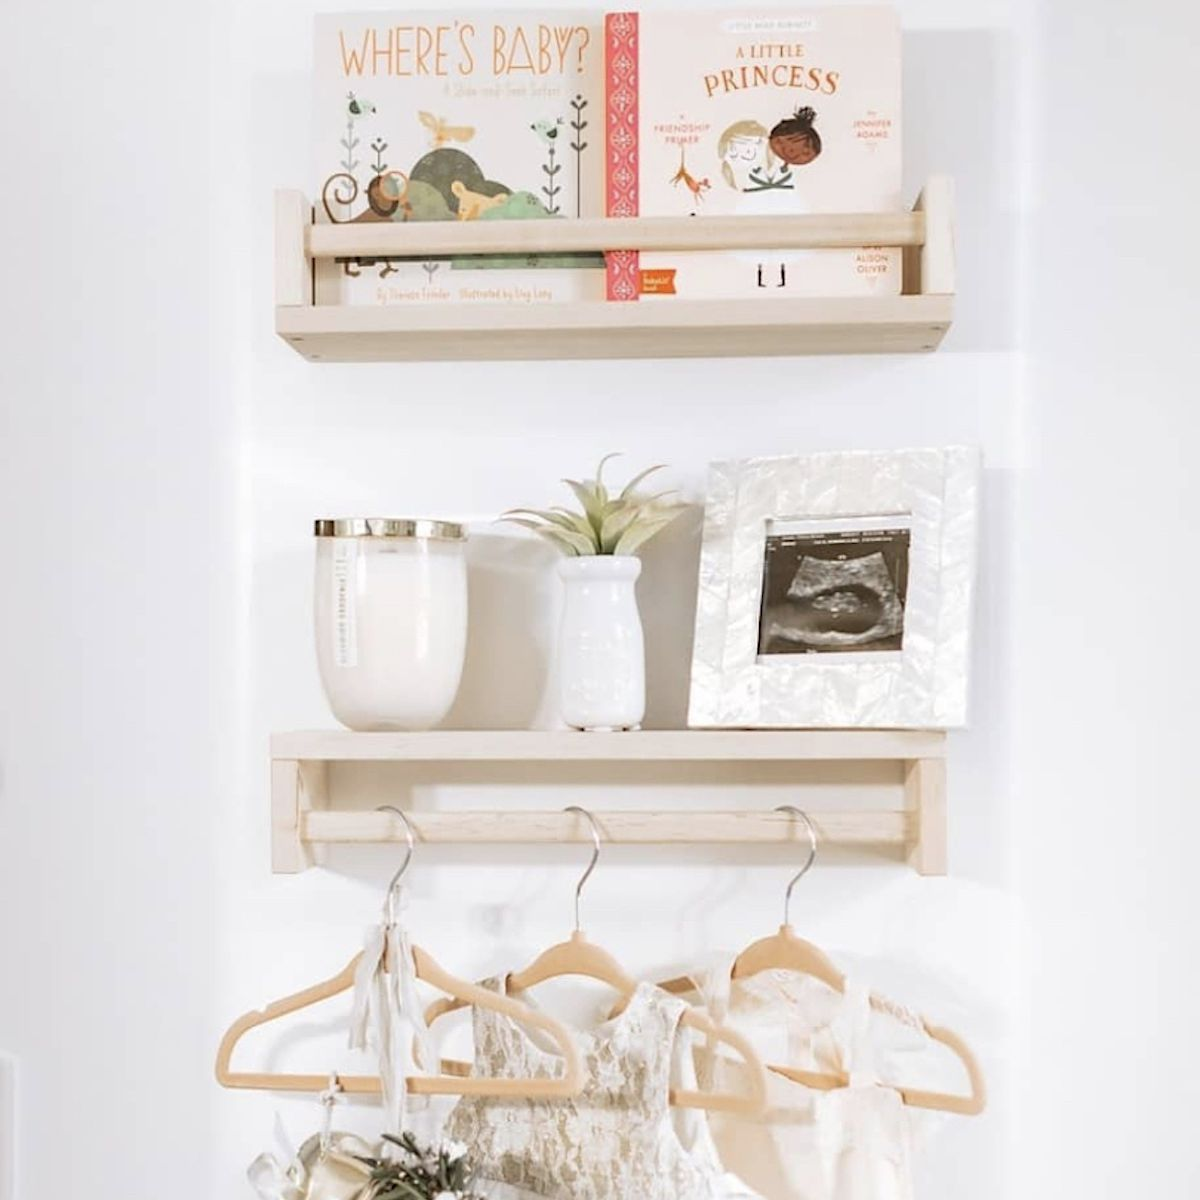 floating shelves, one with hanging rod for hangers